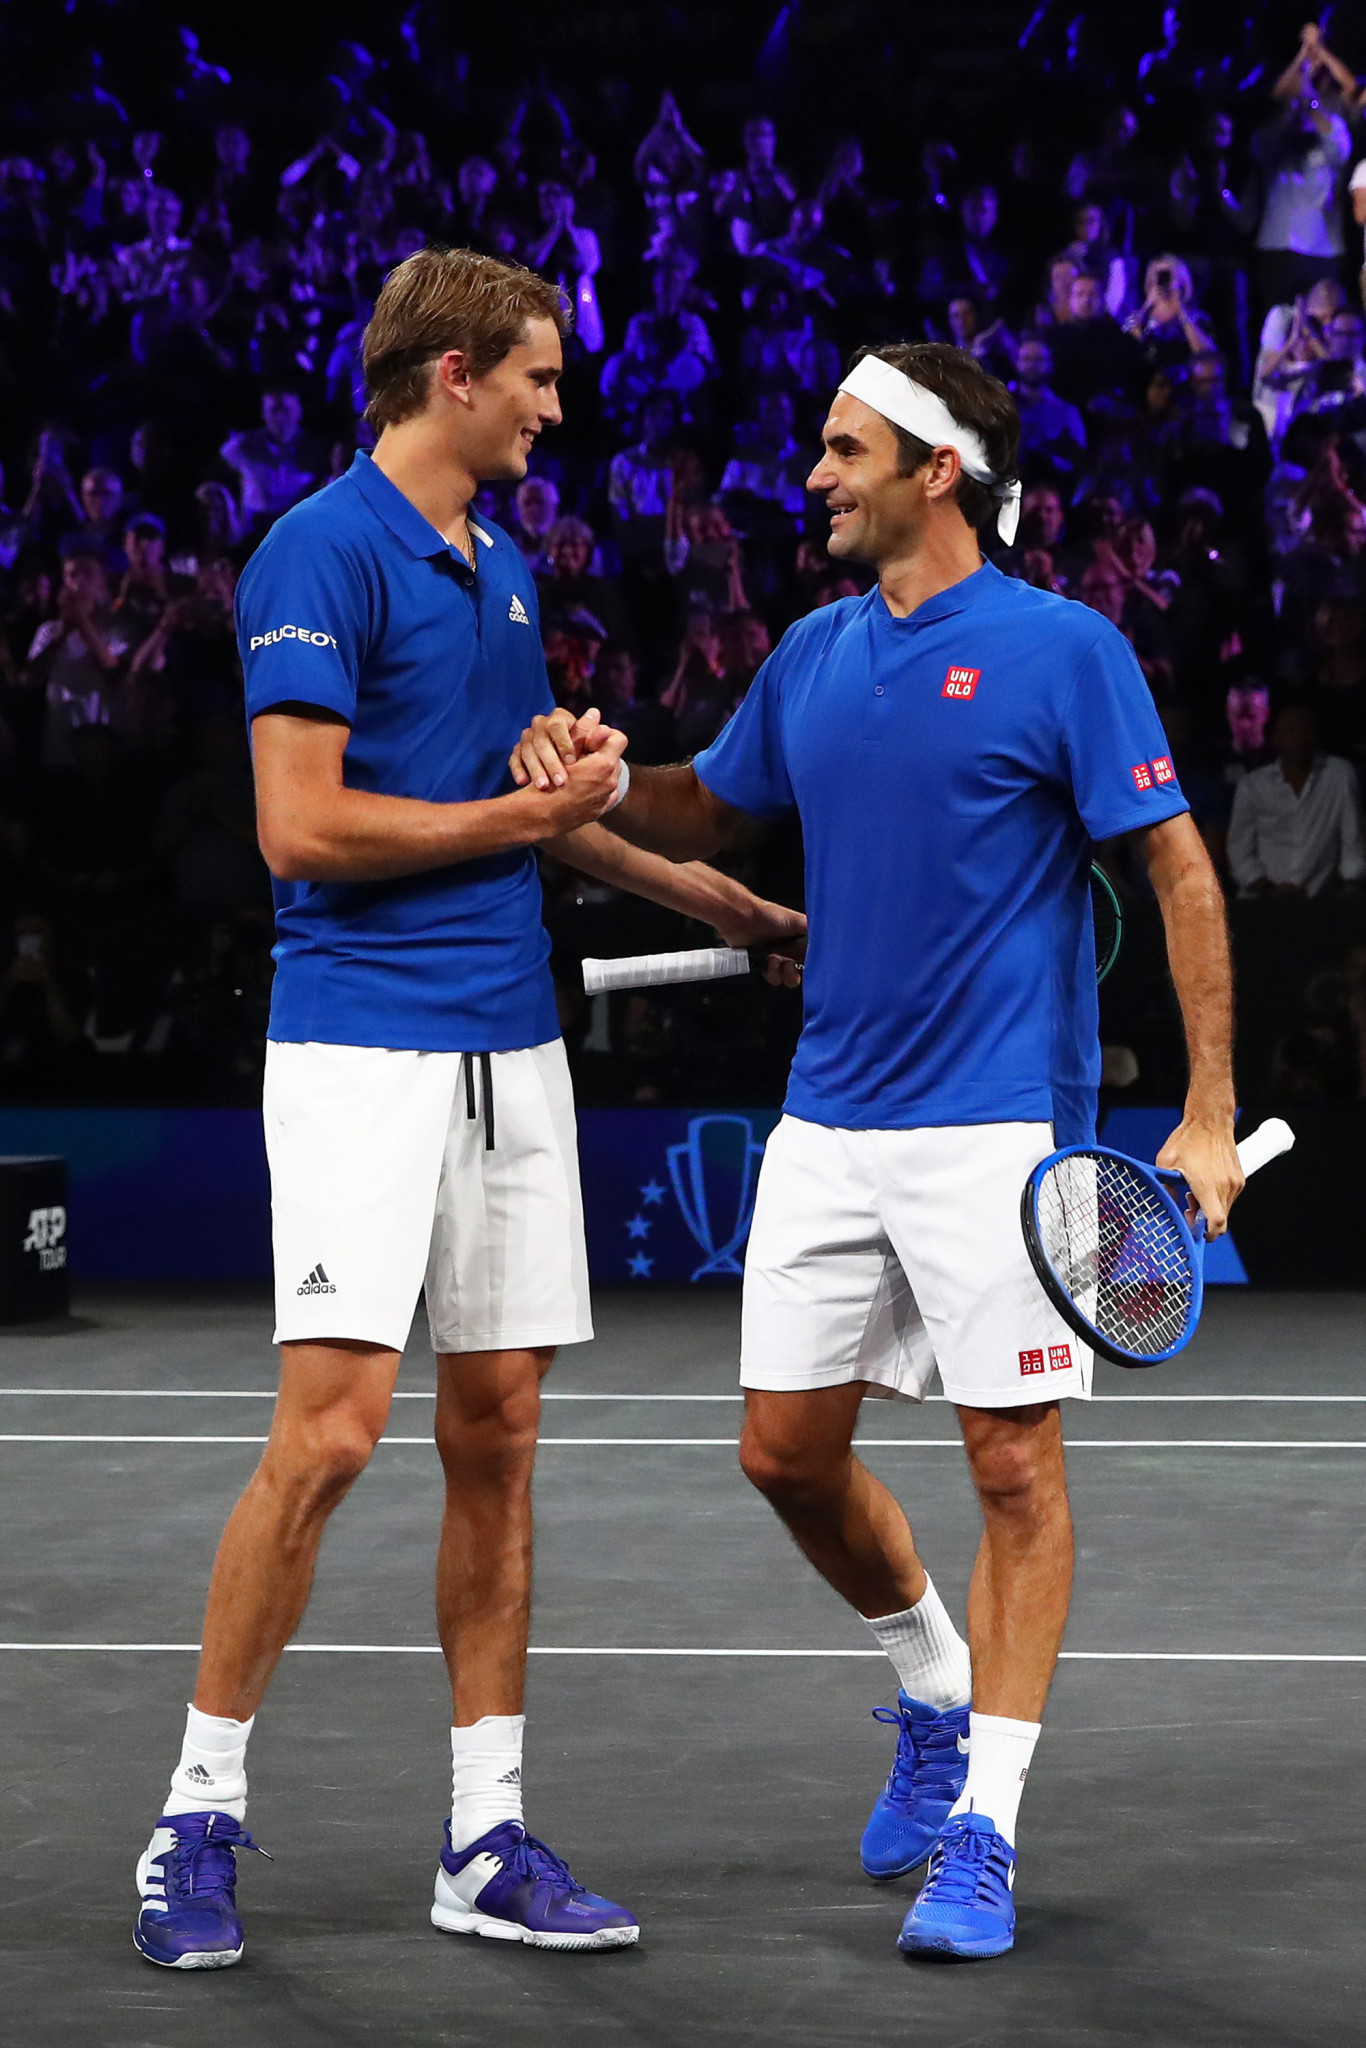 Federer and Zverev give Europe 3-1 lead over Team World at Laver Cup